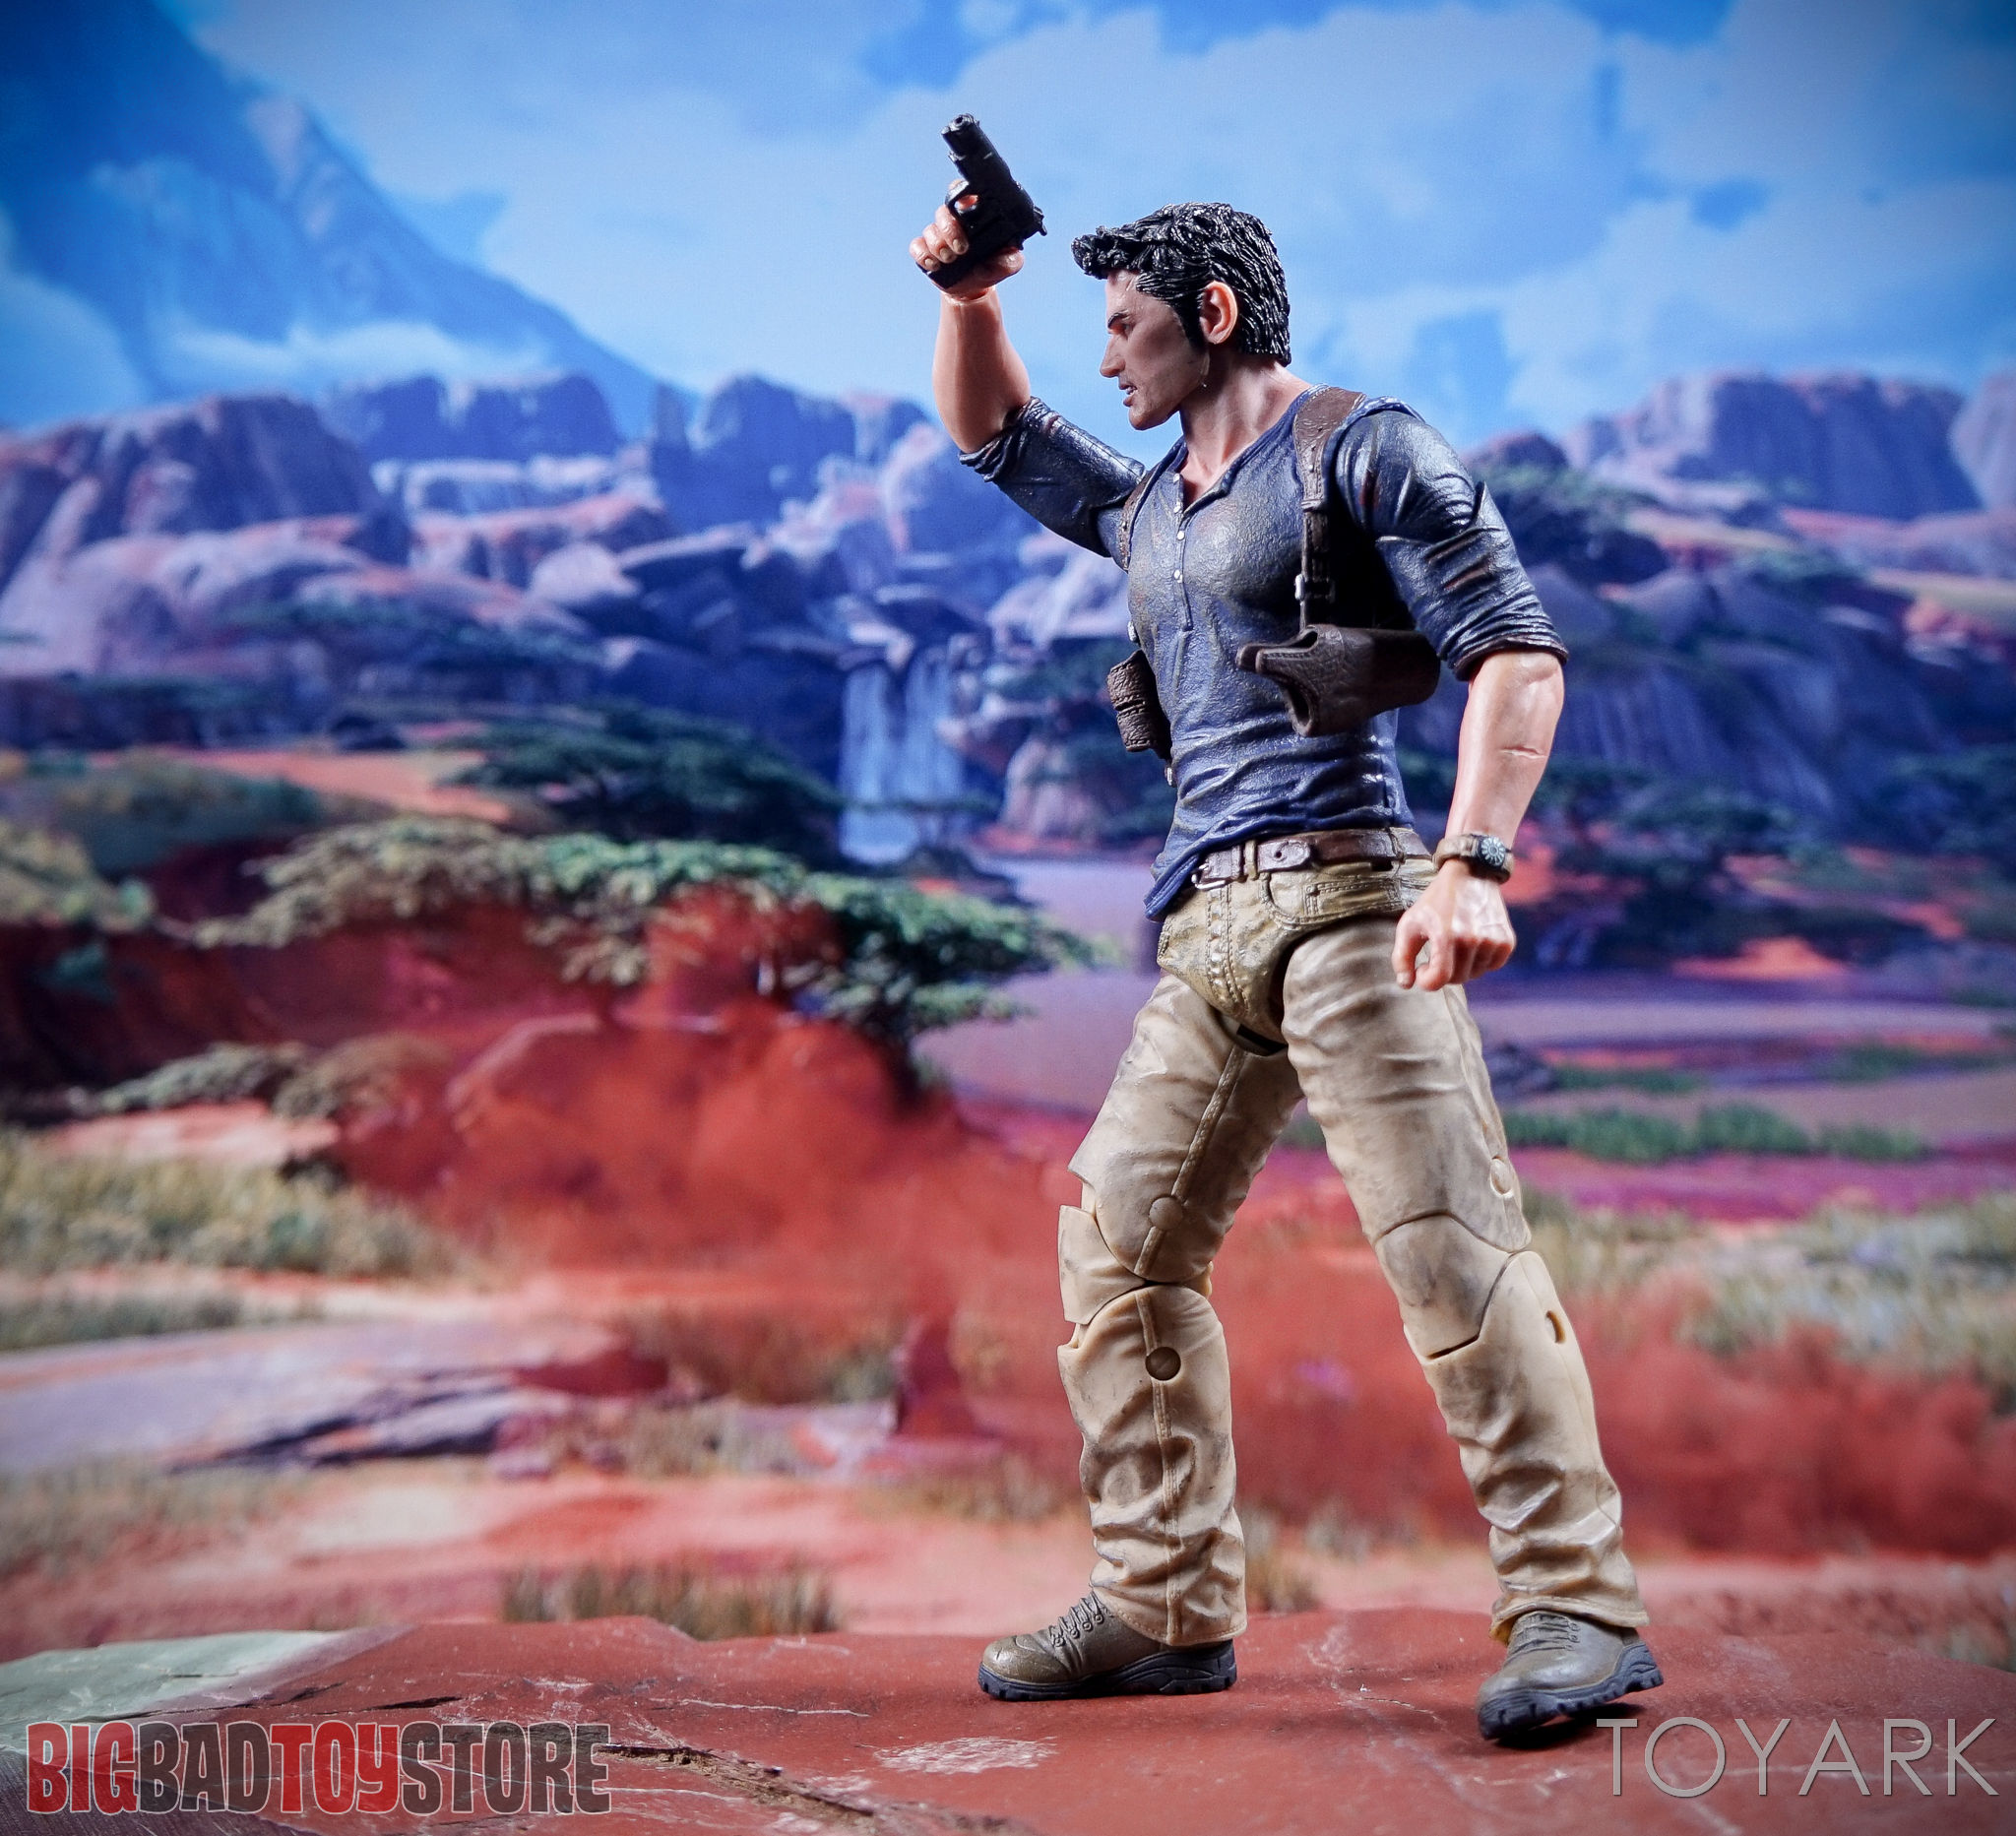 http://news.toyark.com/wp-content/uploads/sites/4/2016/09/NECA-Uncharted-4-Nathan-Drake-039.jpg